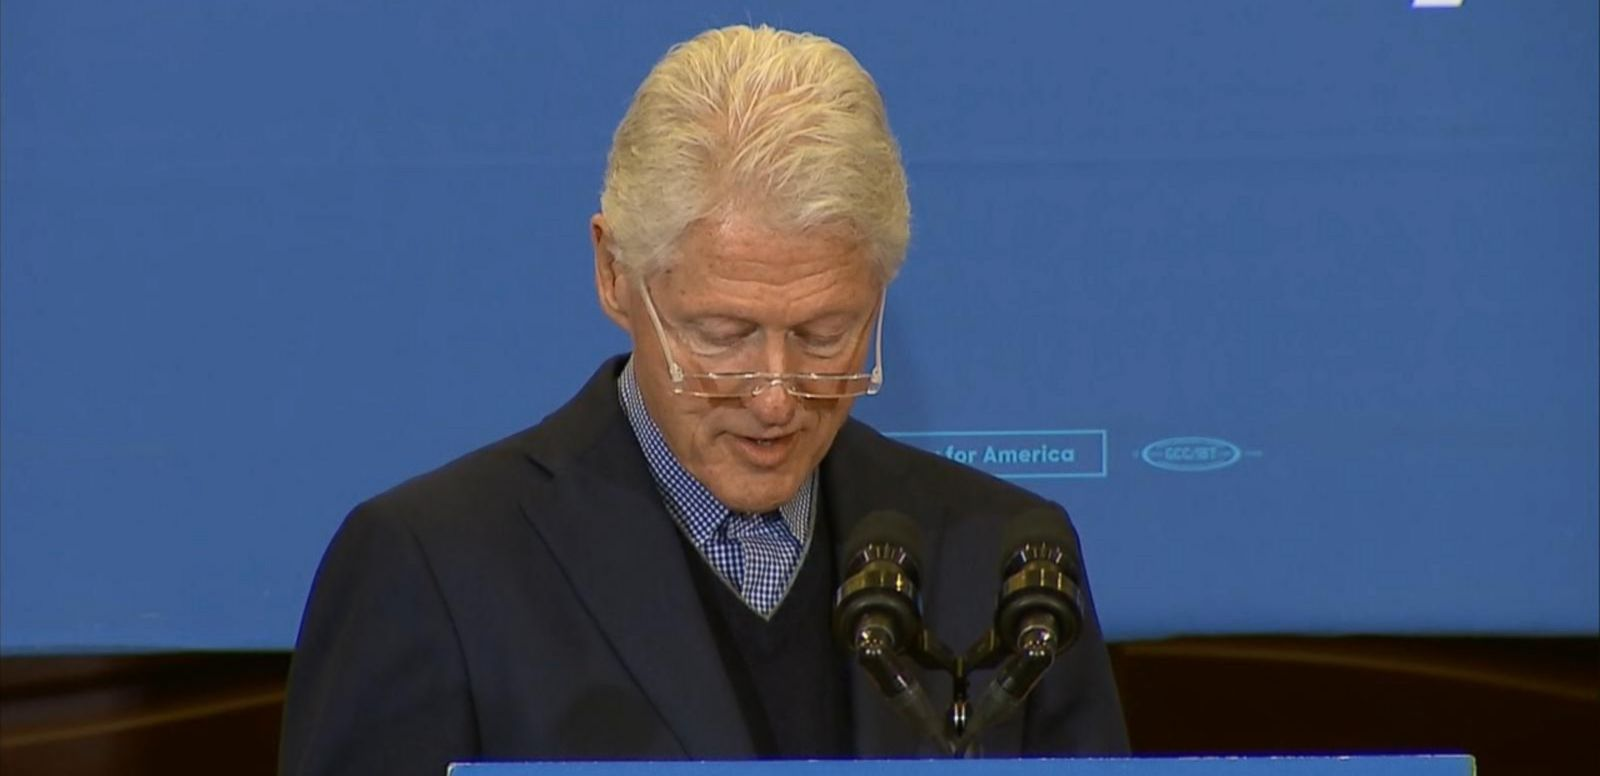 VIDEO: Phone Call From Hillary Interrupts Bill Clinton's Speech